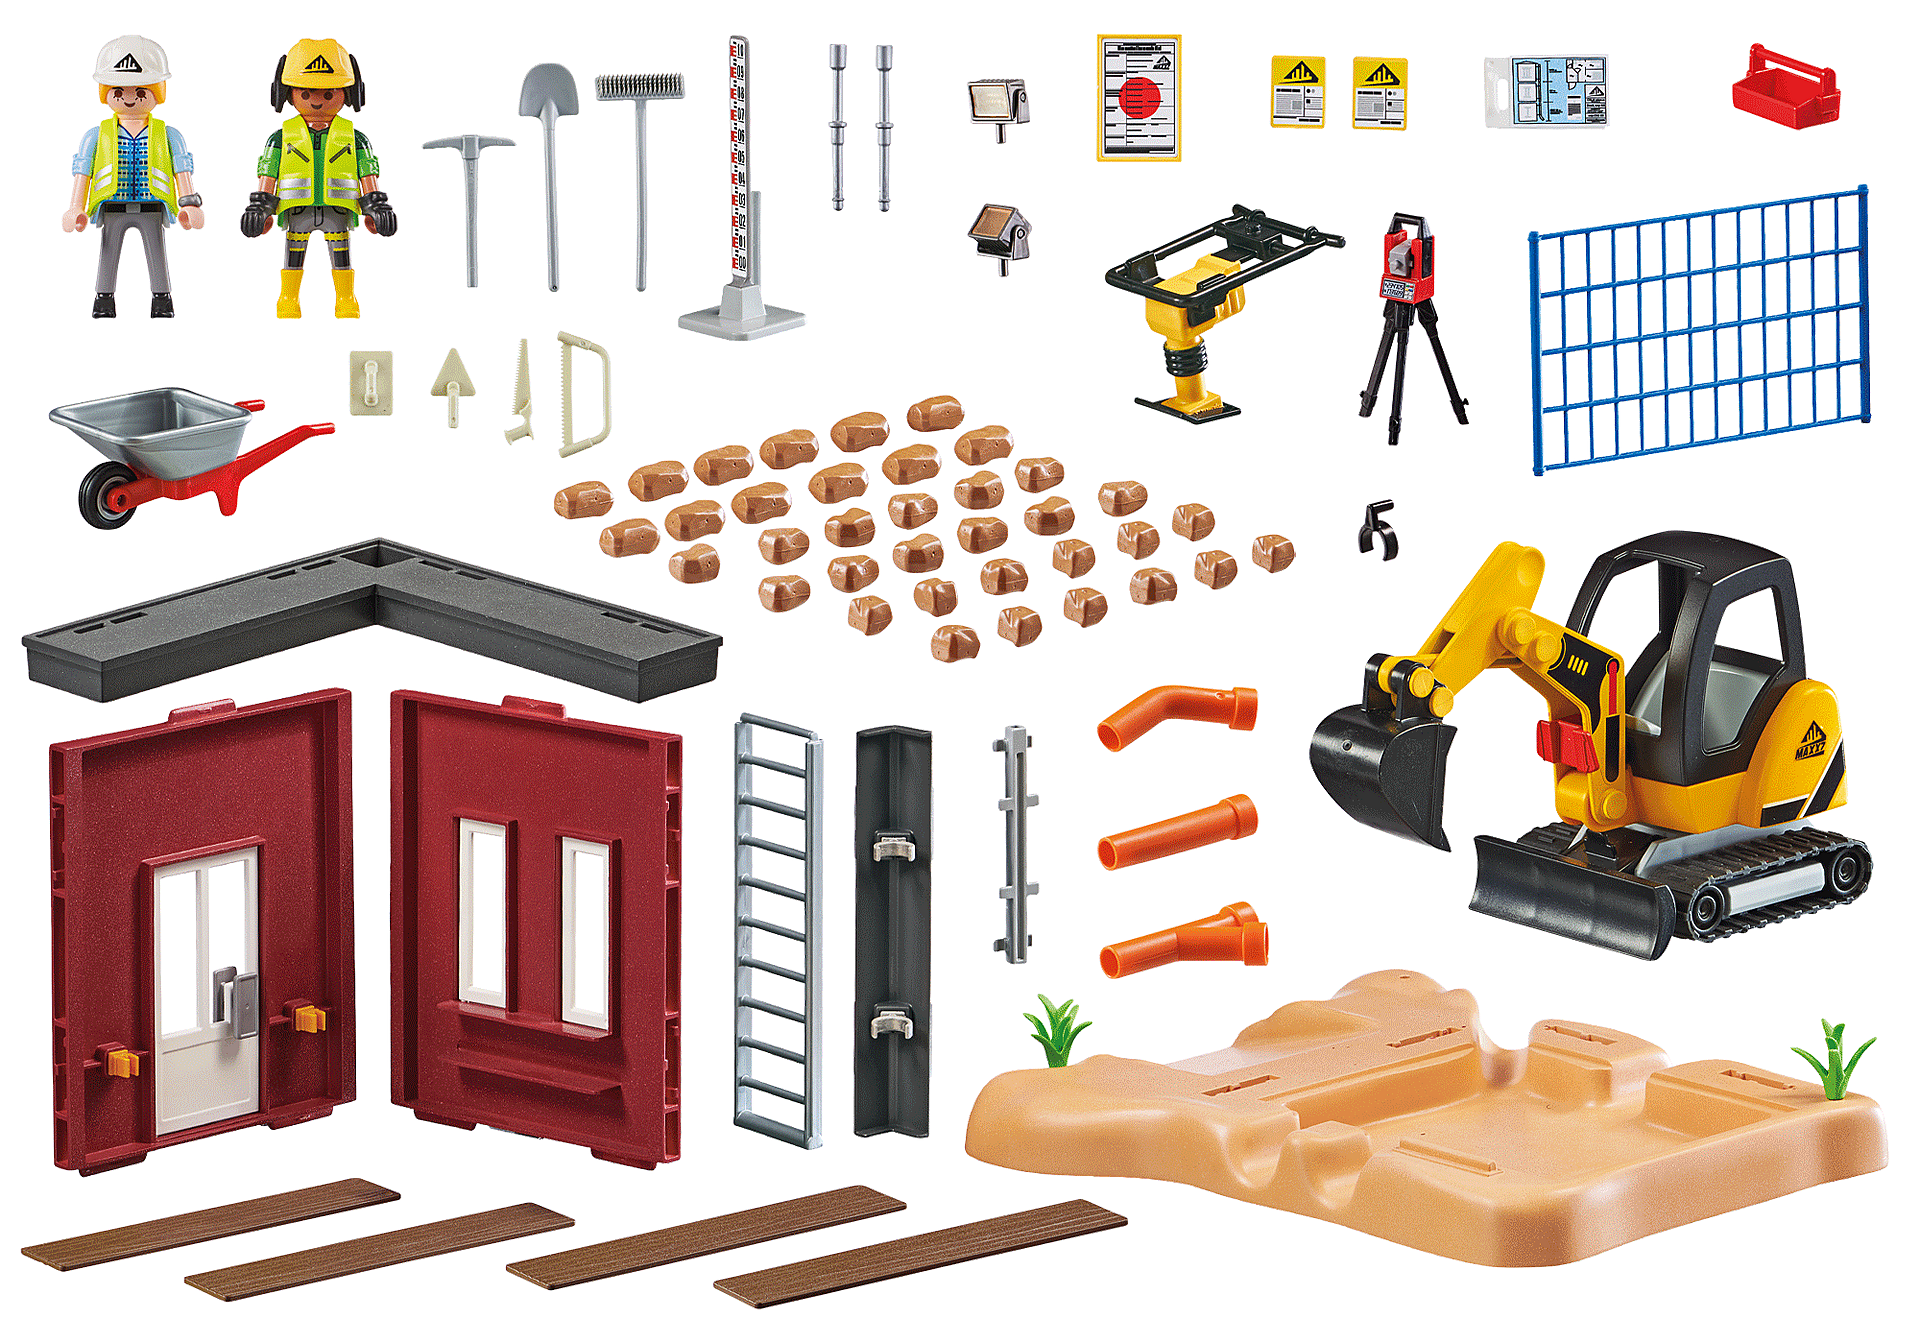 70443 Mini Excavator with Building Section zoom image3